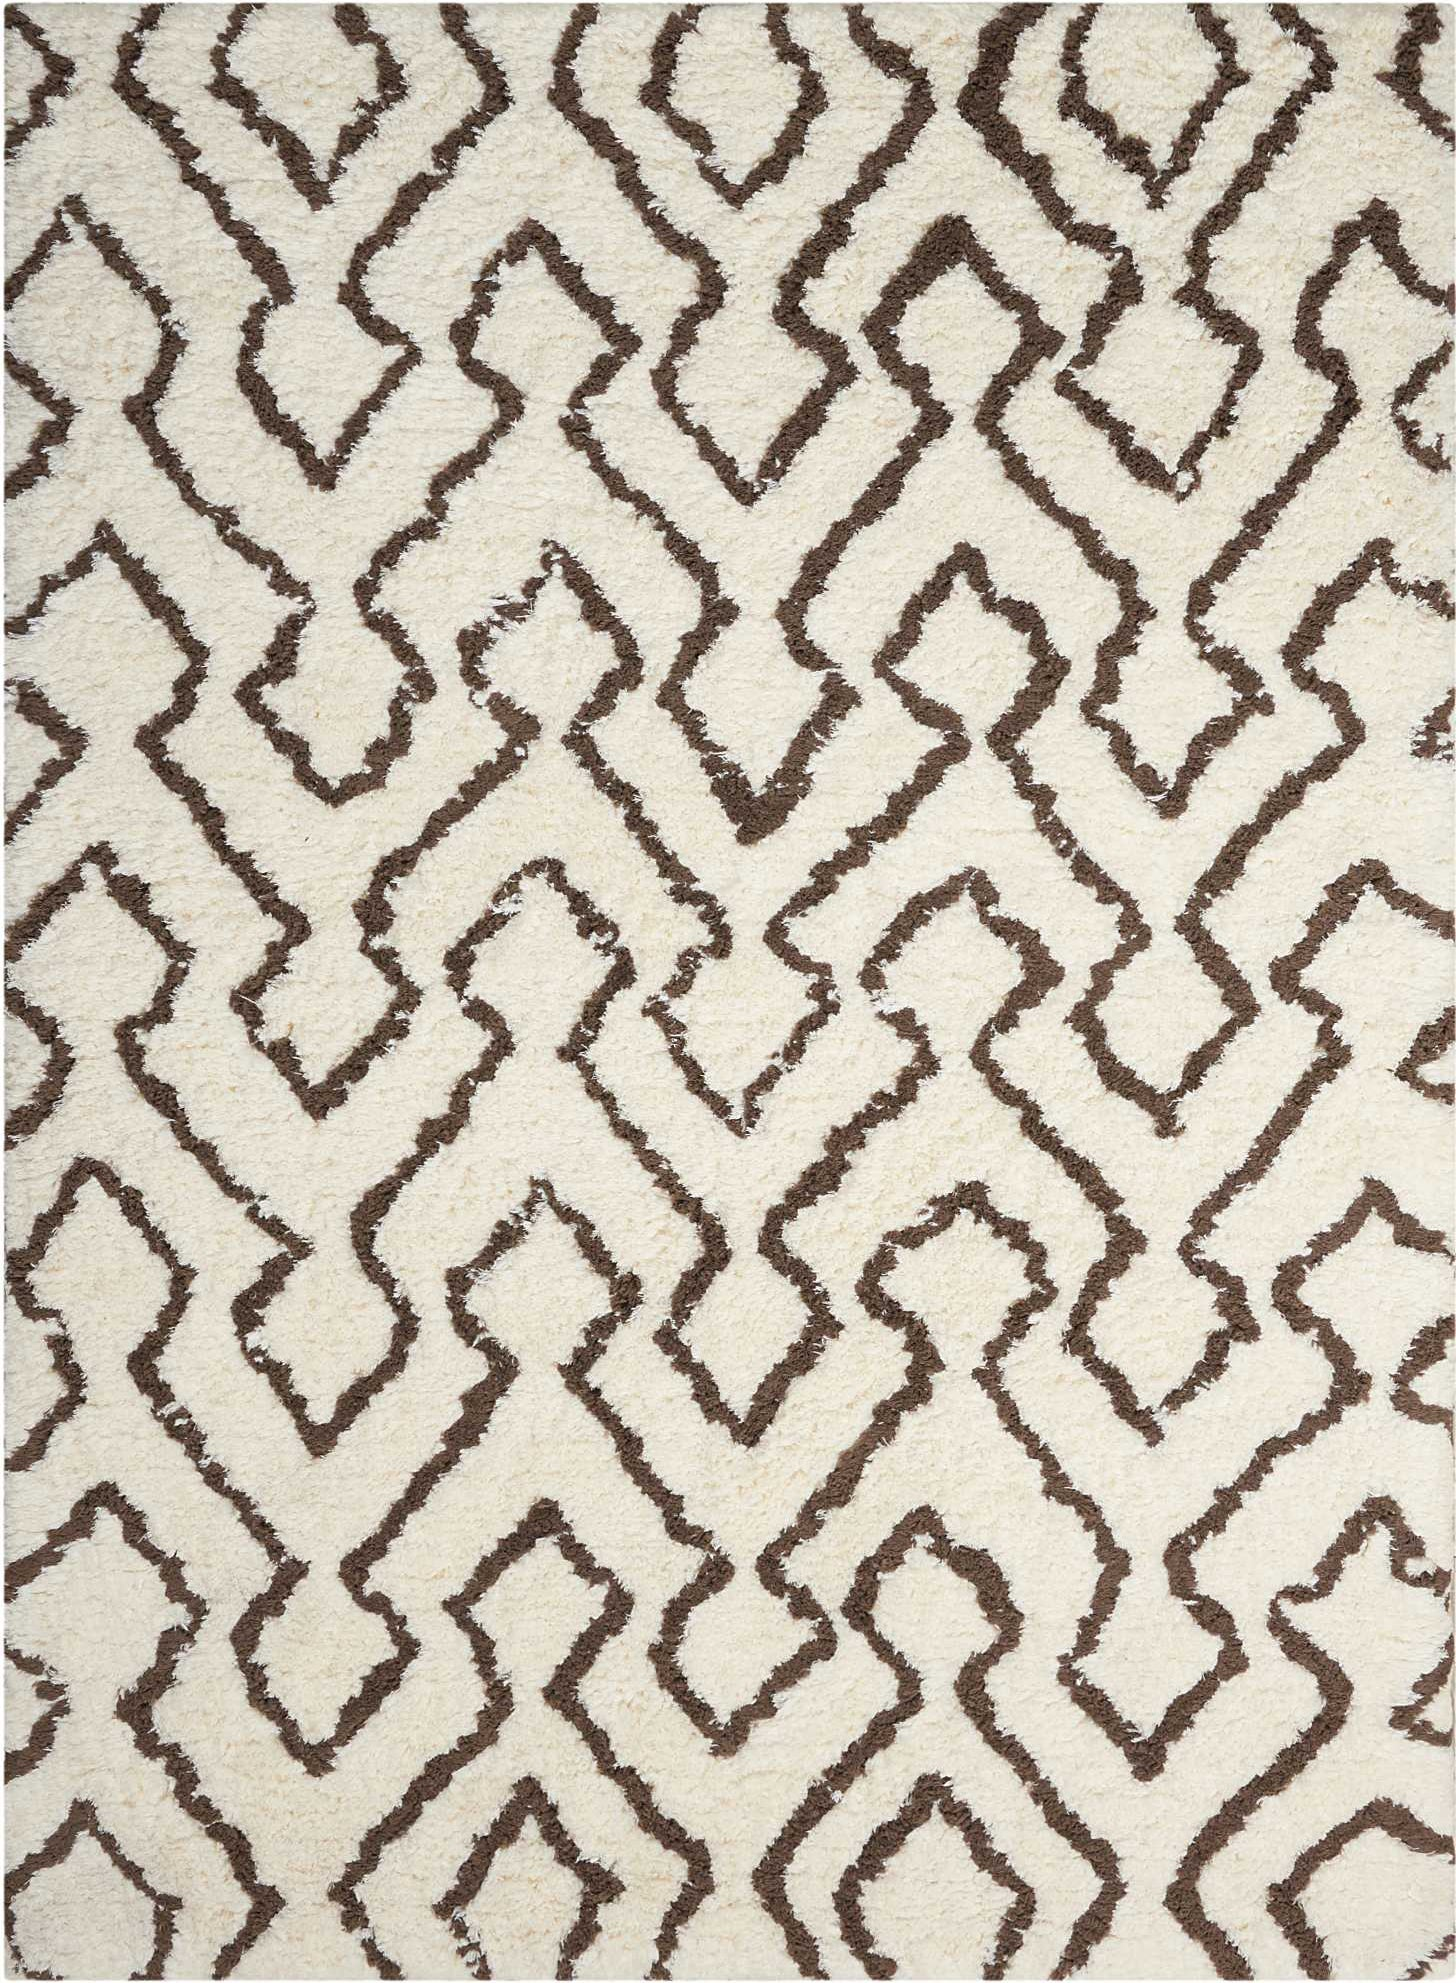 Nourison Galway GLW03 Ivory/Chocolate Area Rug main image